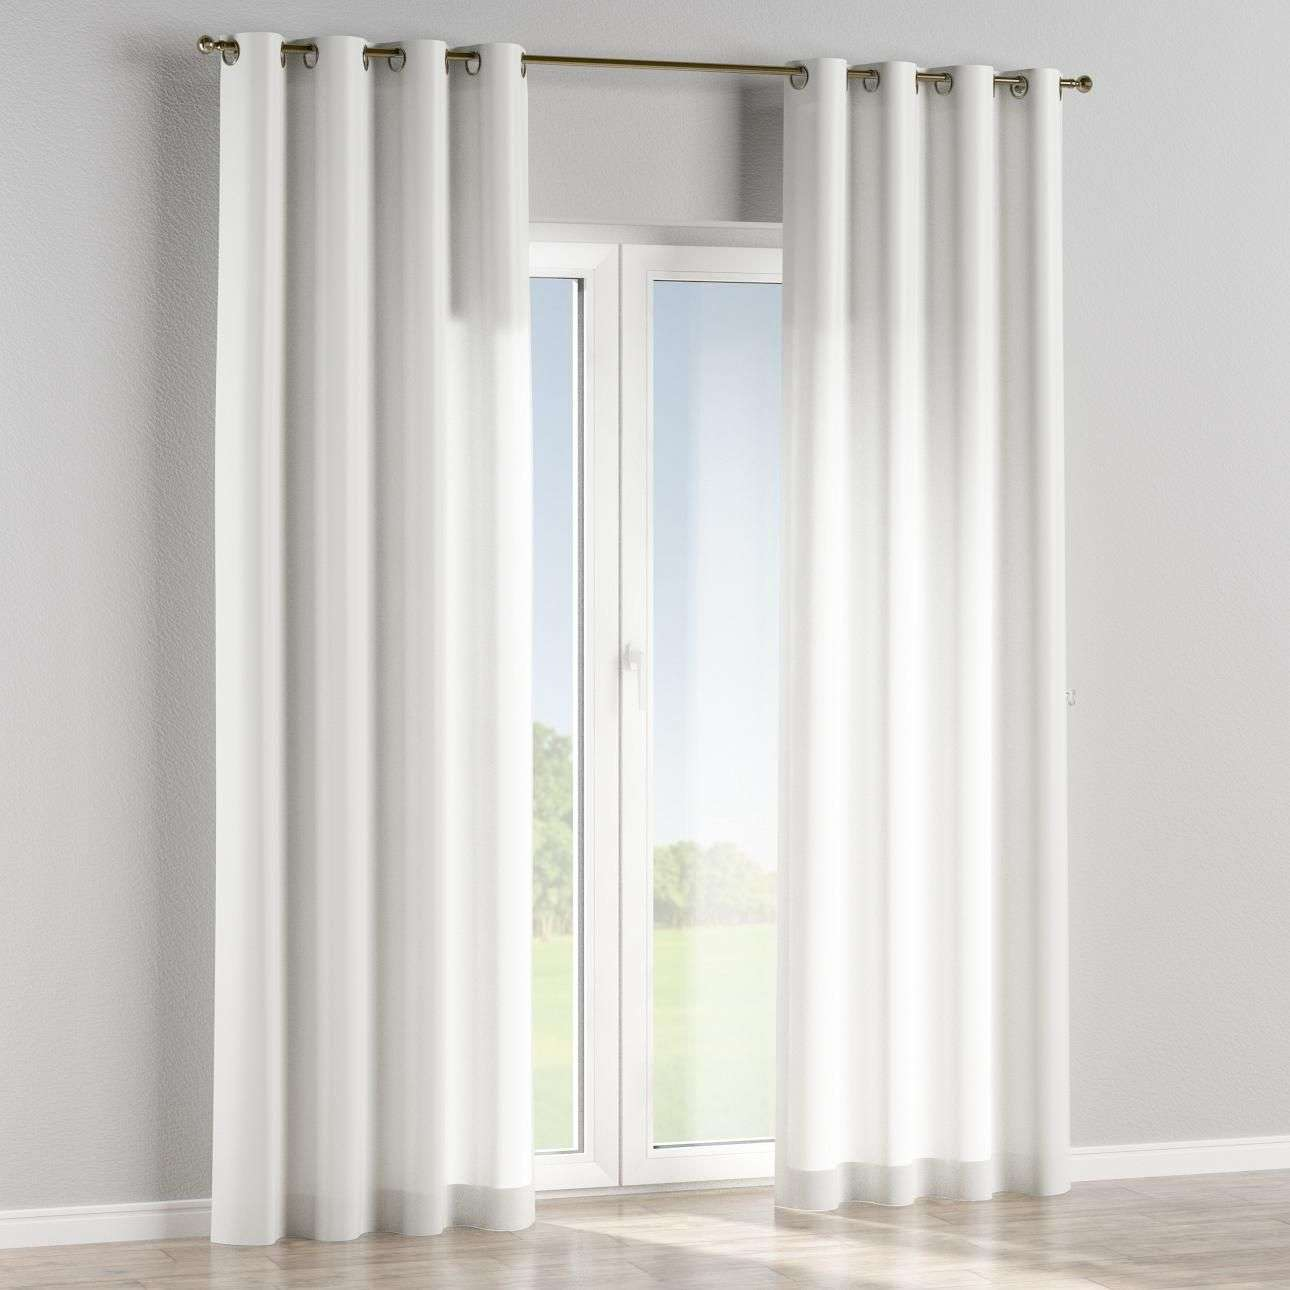 Eyelet lined curtains in collection Marina, fabric: 140-13